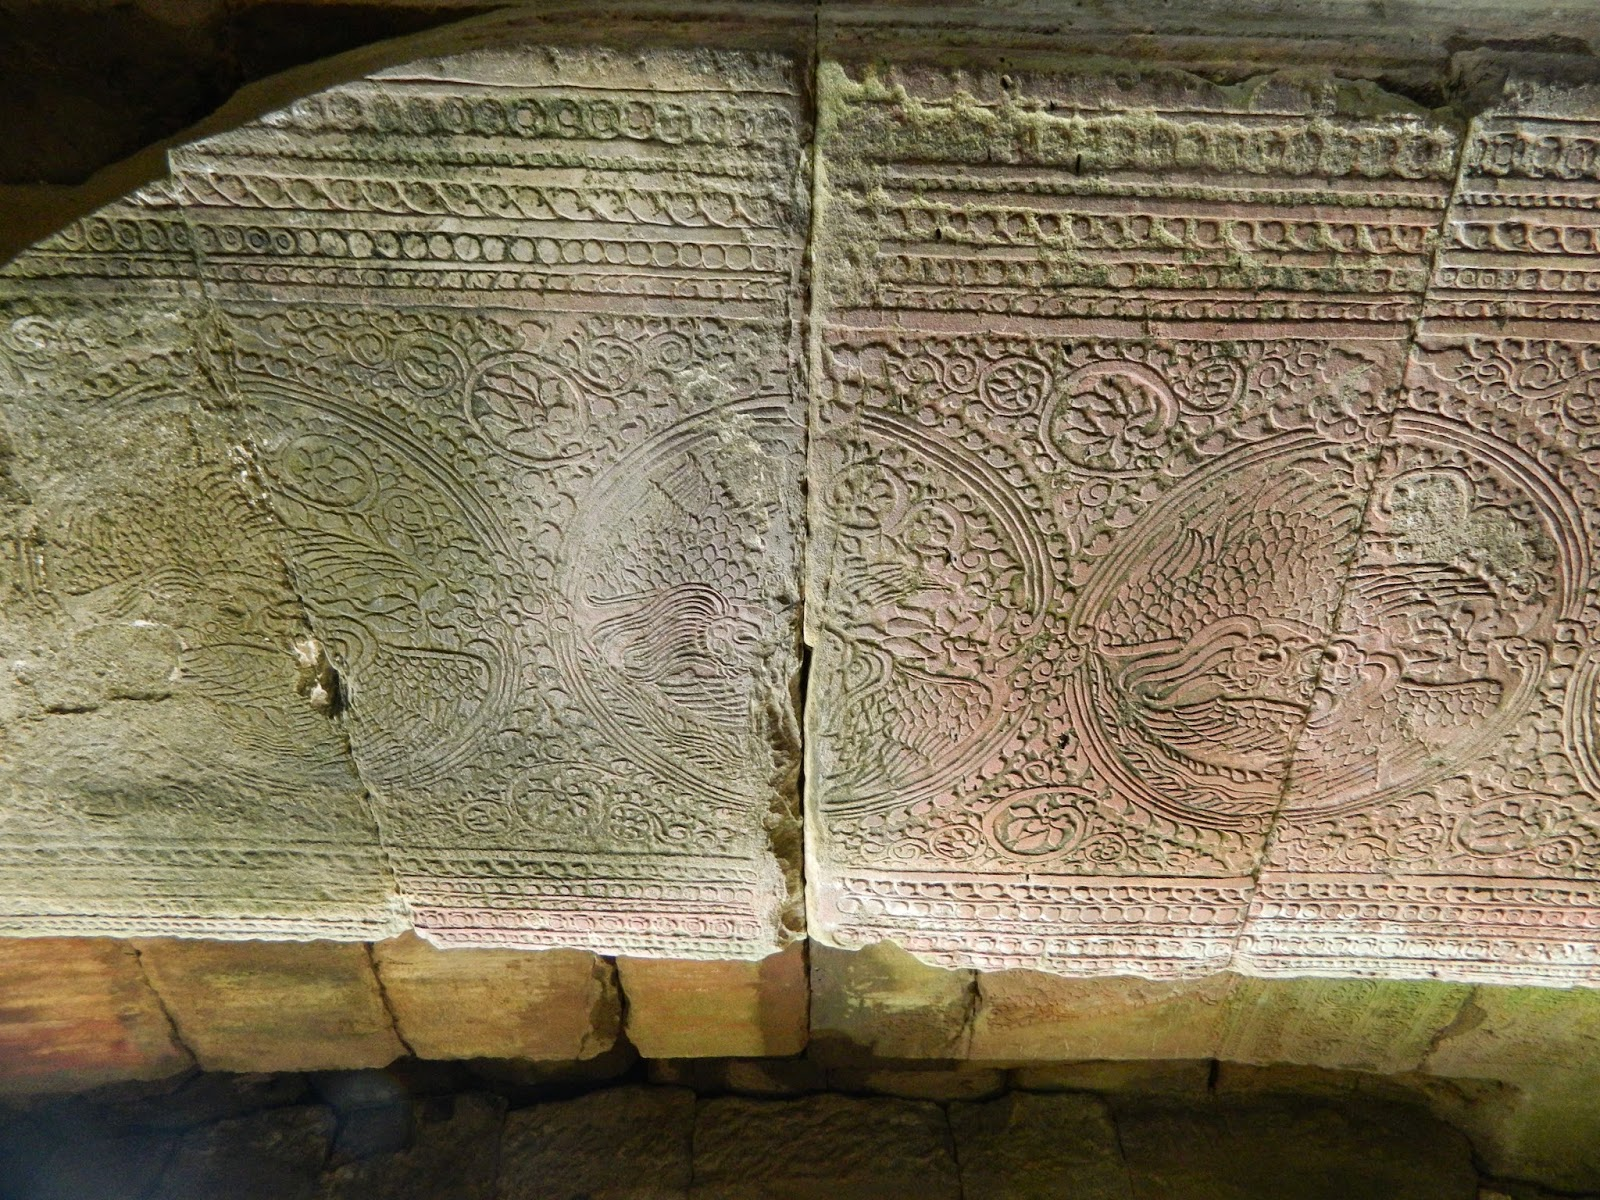 Walls were well decorated but still had the shallow carvings